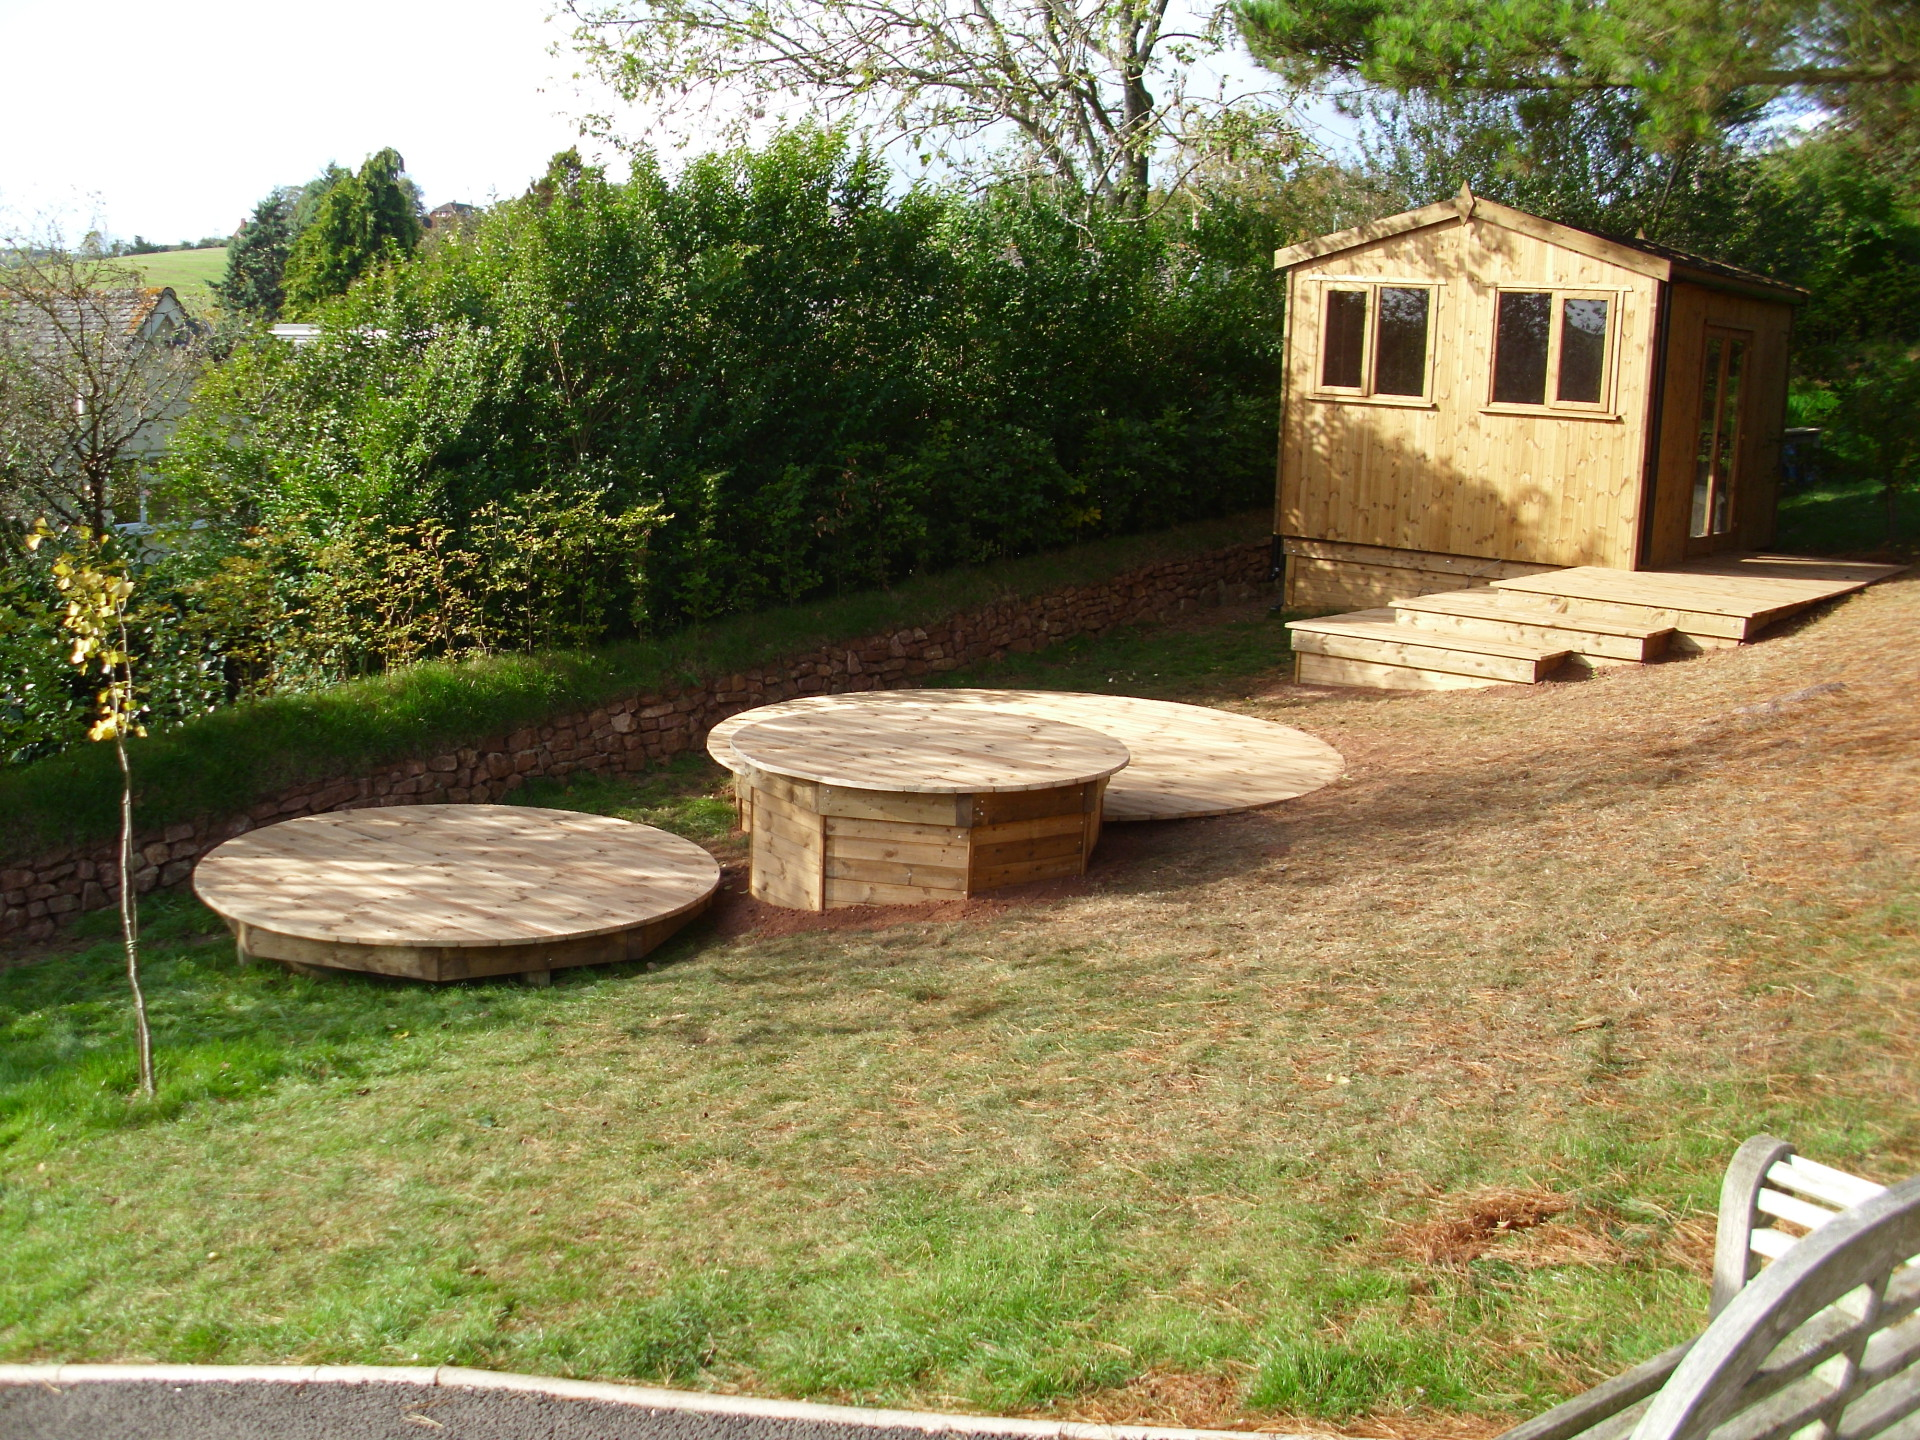 Lots of timber solutions can be achieved.